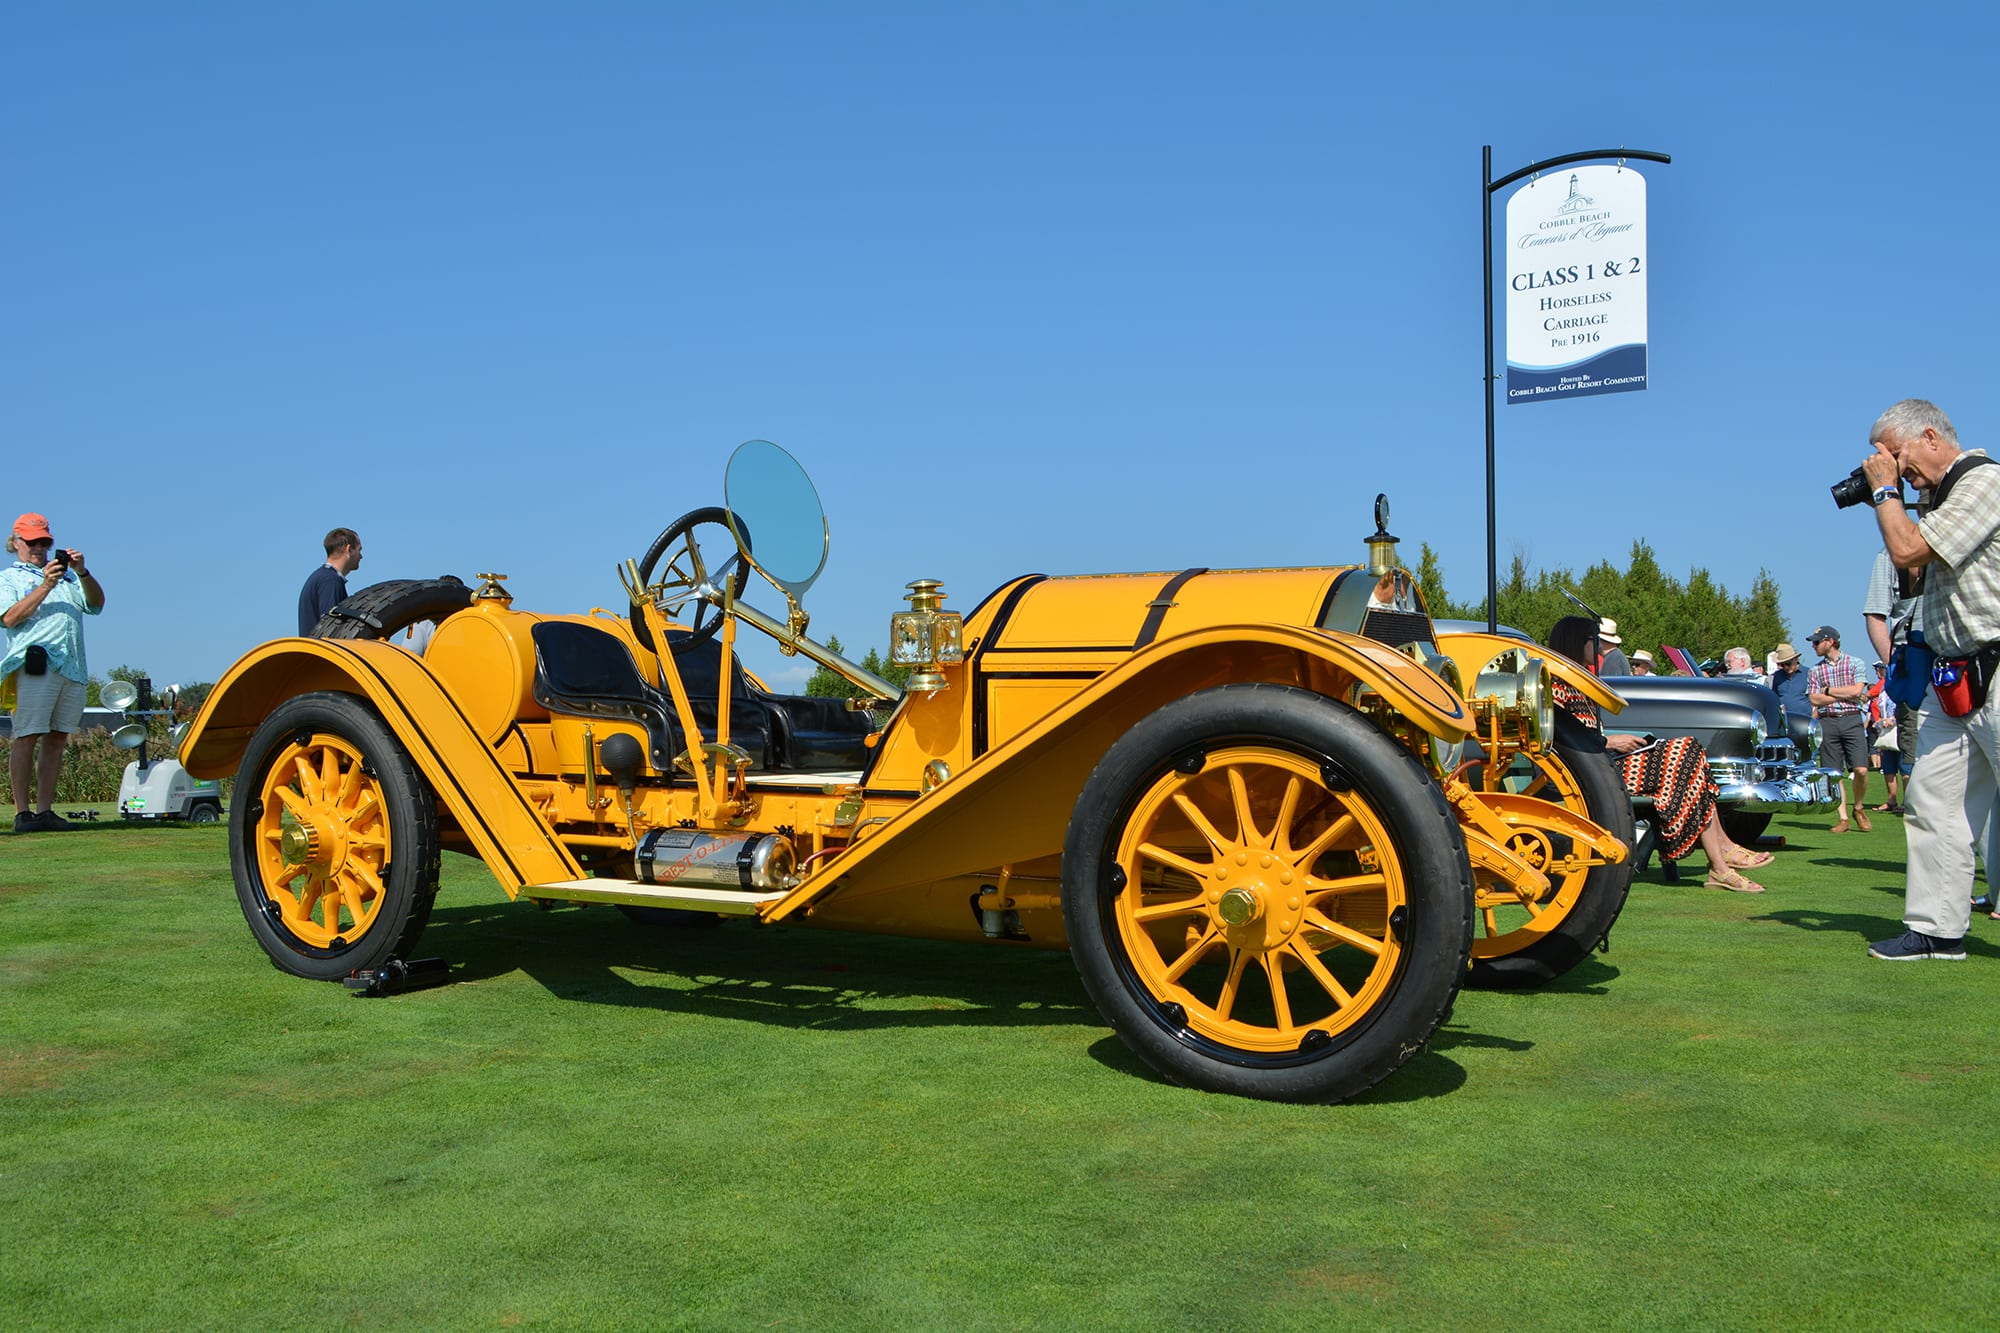 1913 Mercer J35 Raceabout